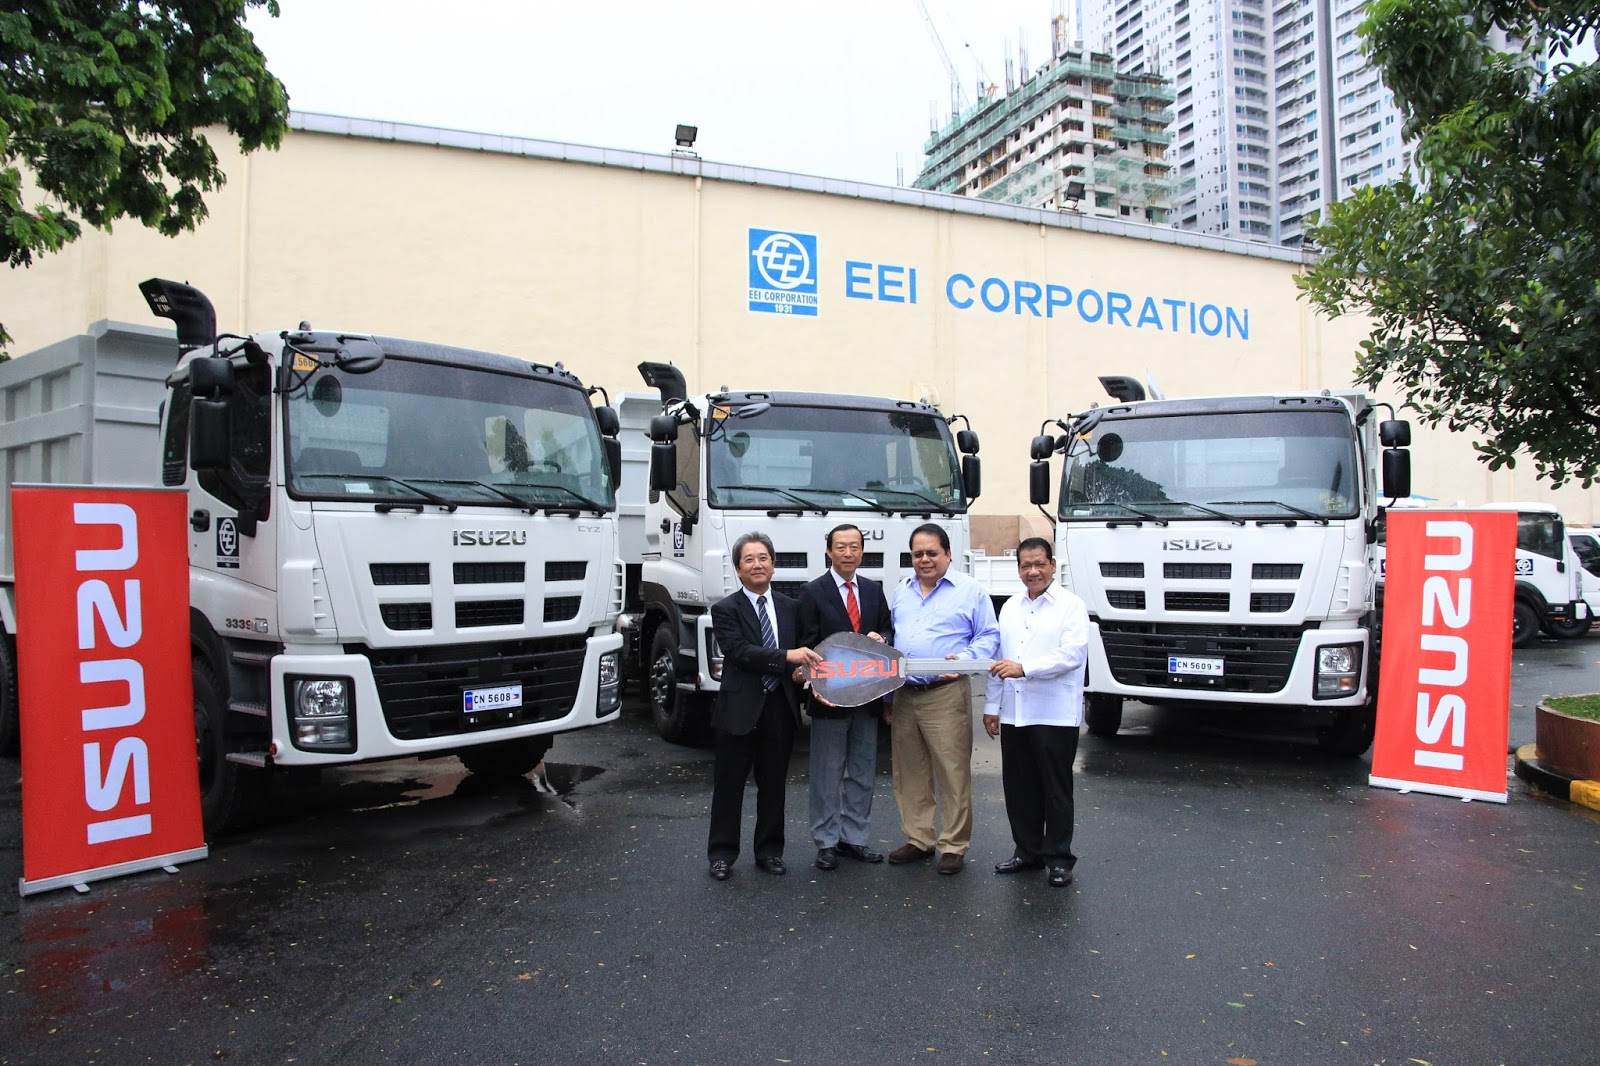 Isuzu PH delivers heavy-duty trucks to EEI Corporation